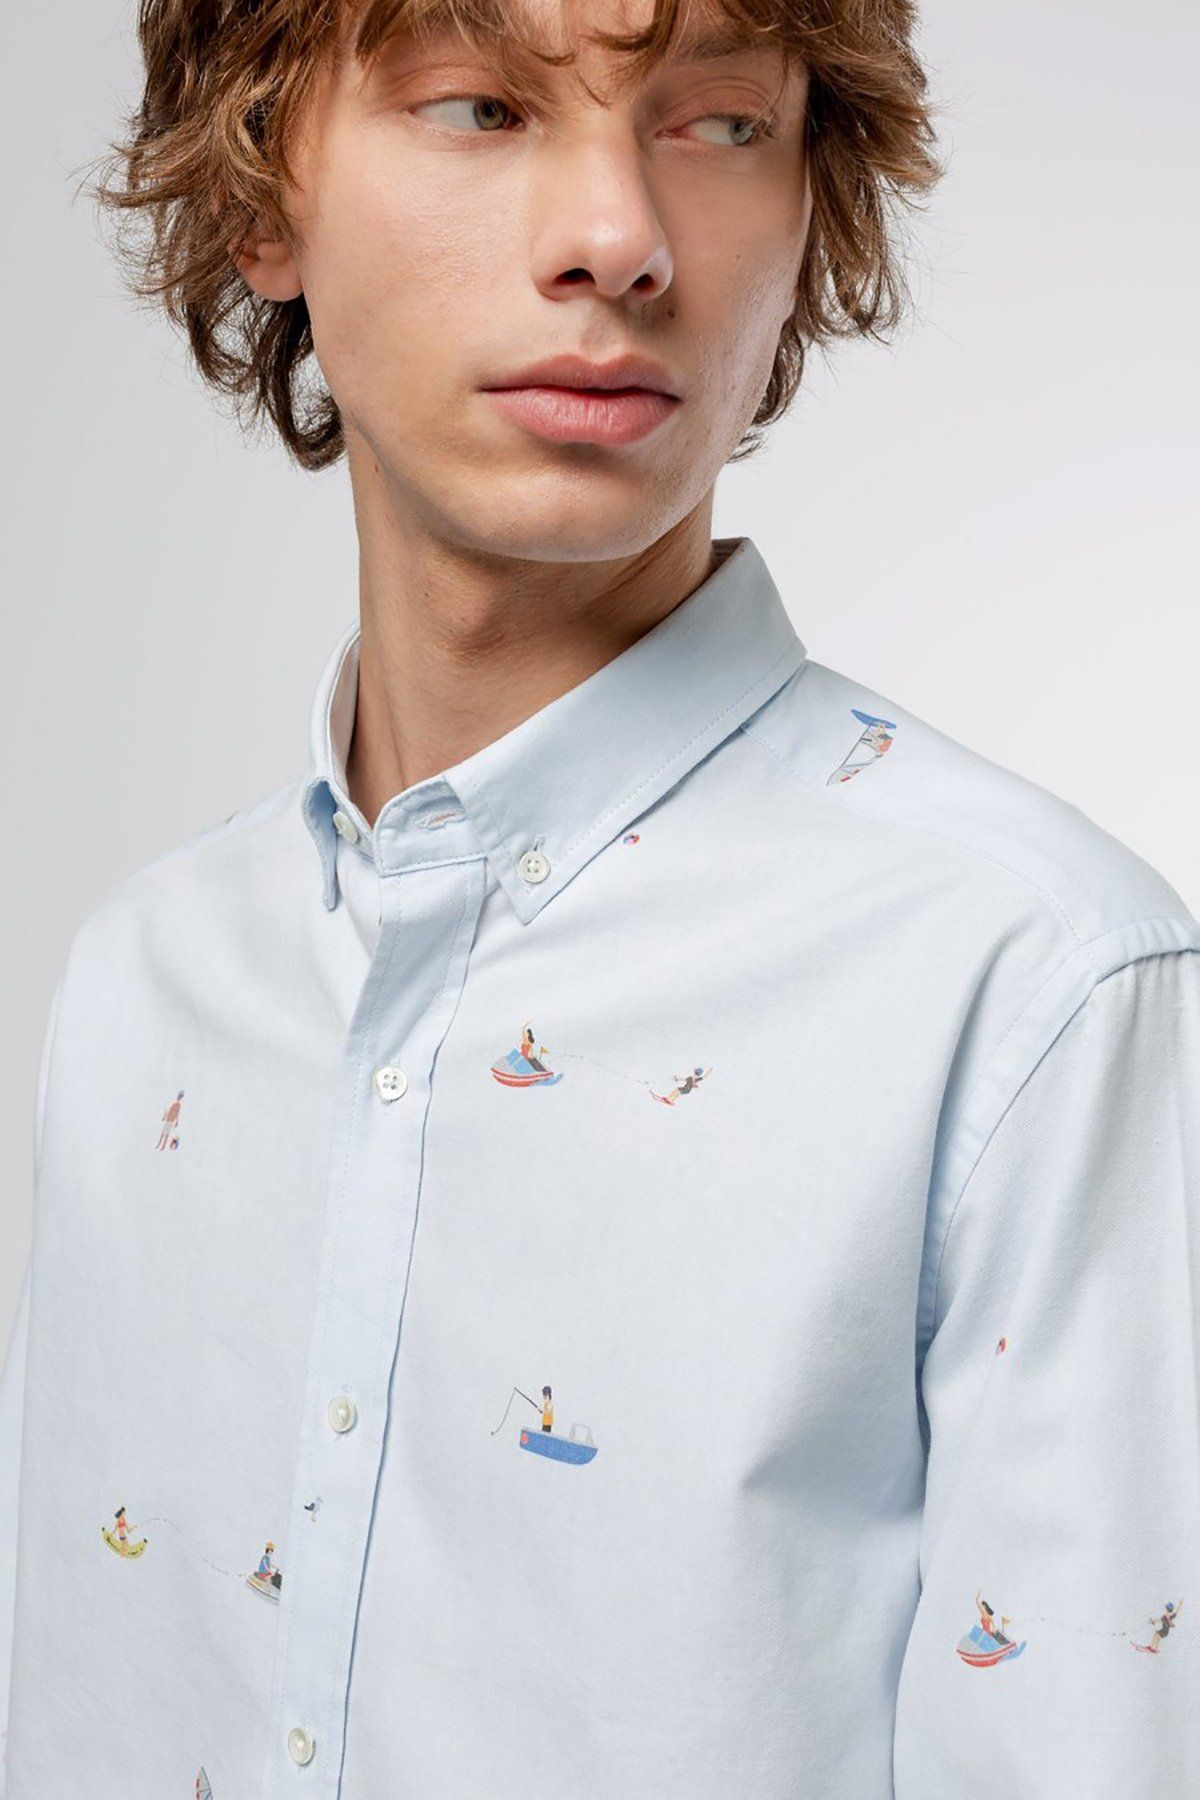 Sky Blue Oxford Beach holiday Shirt - Life in Paradigm Menswear London